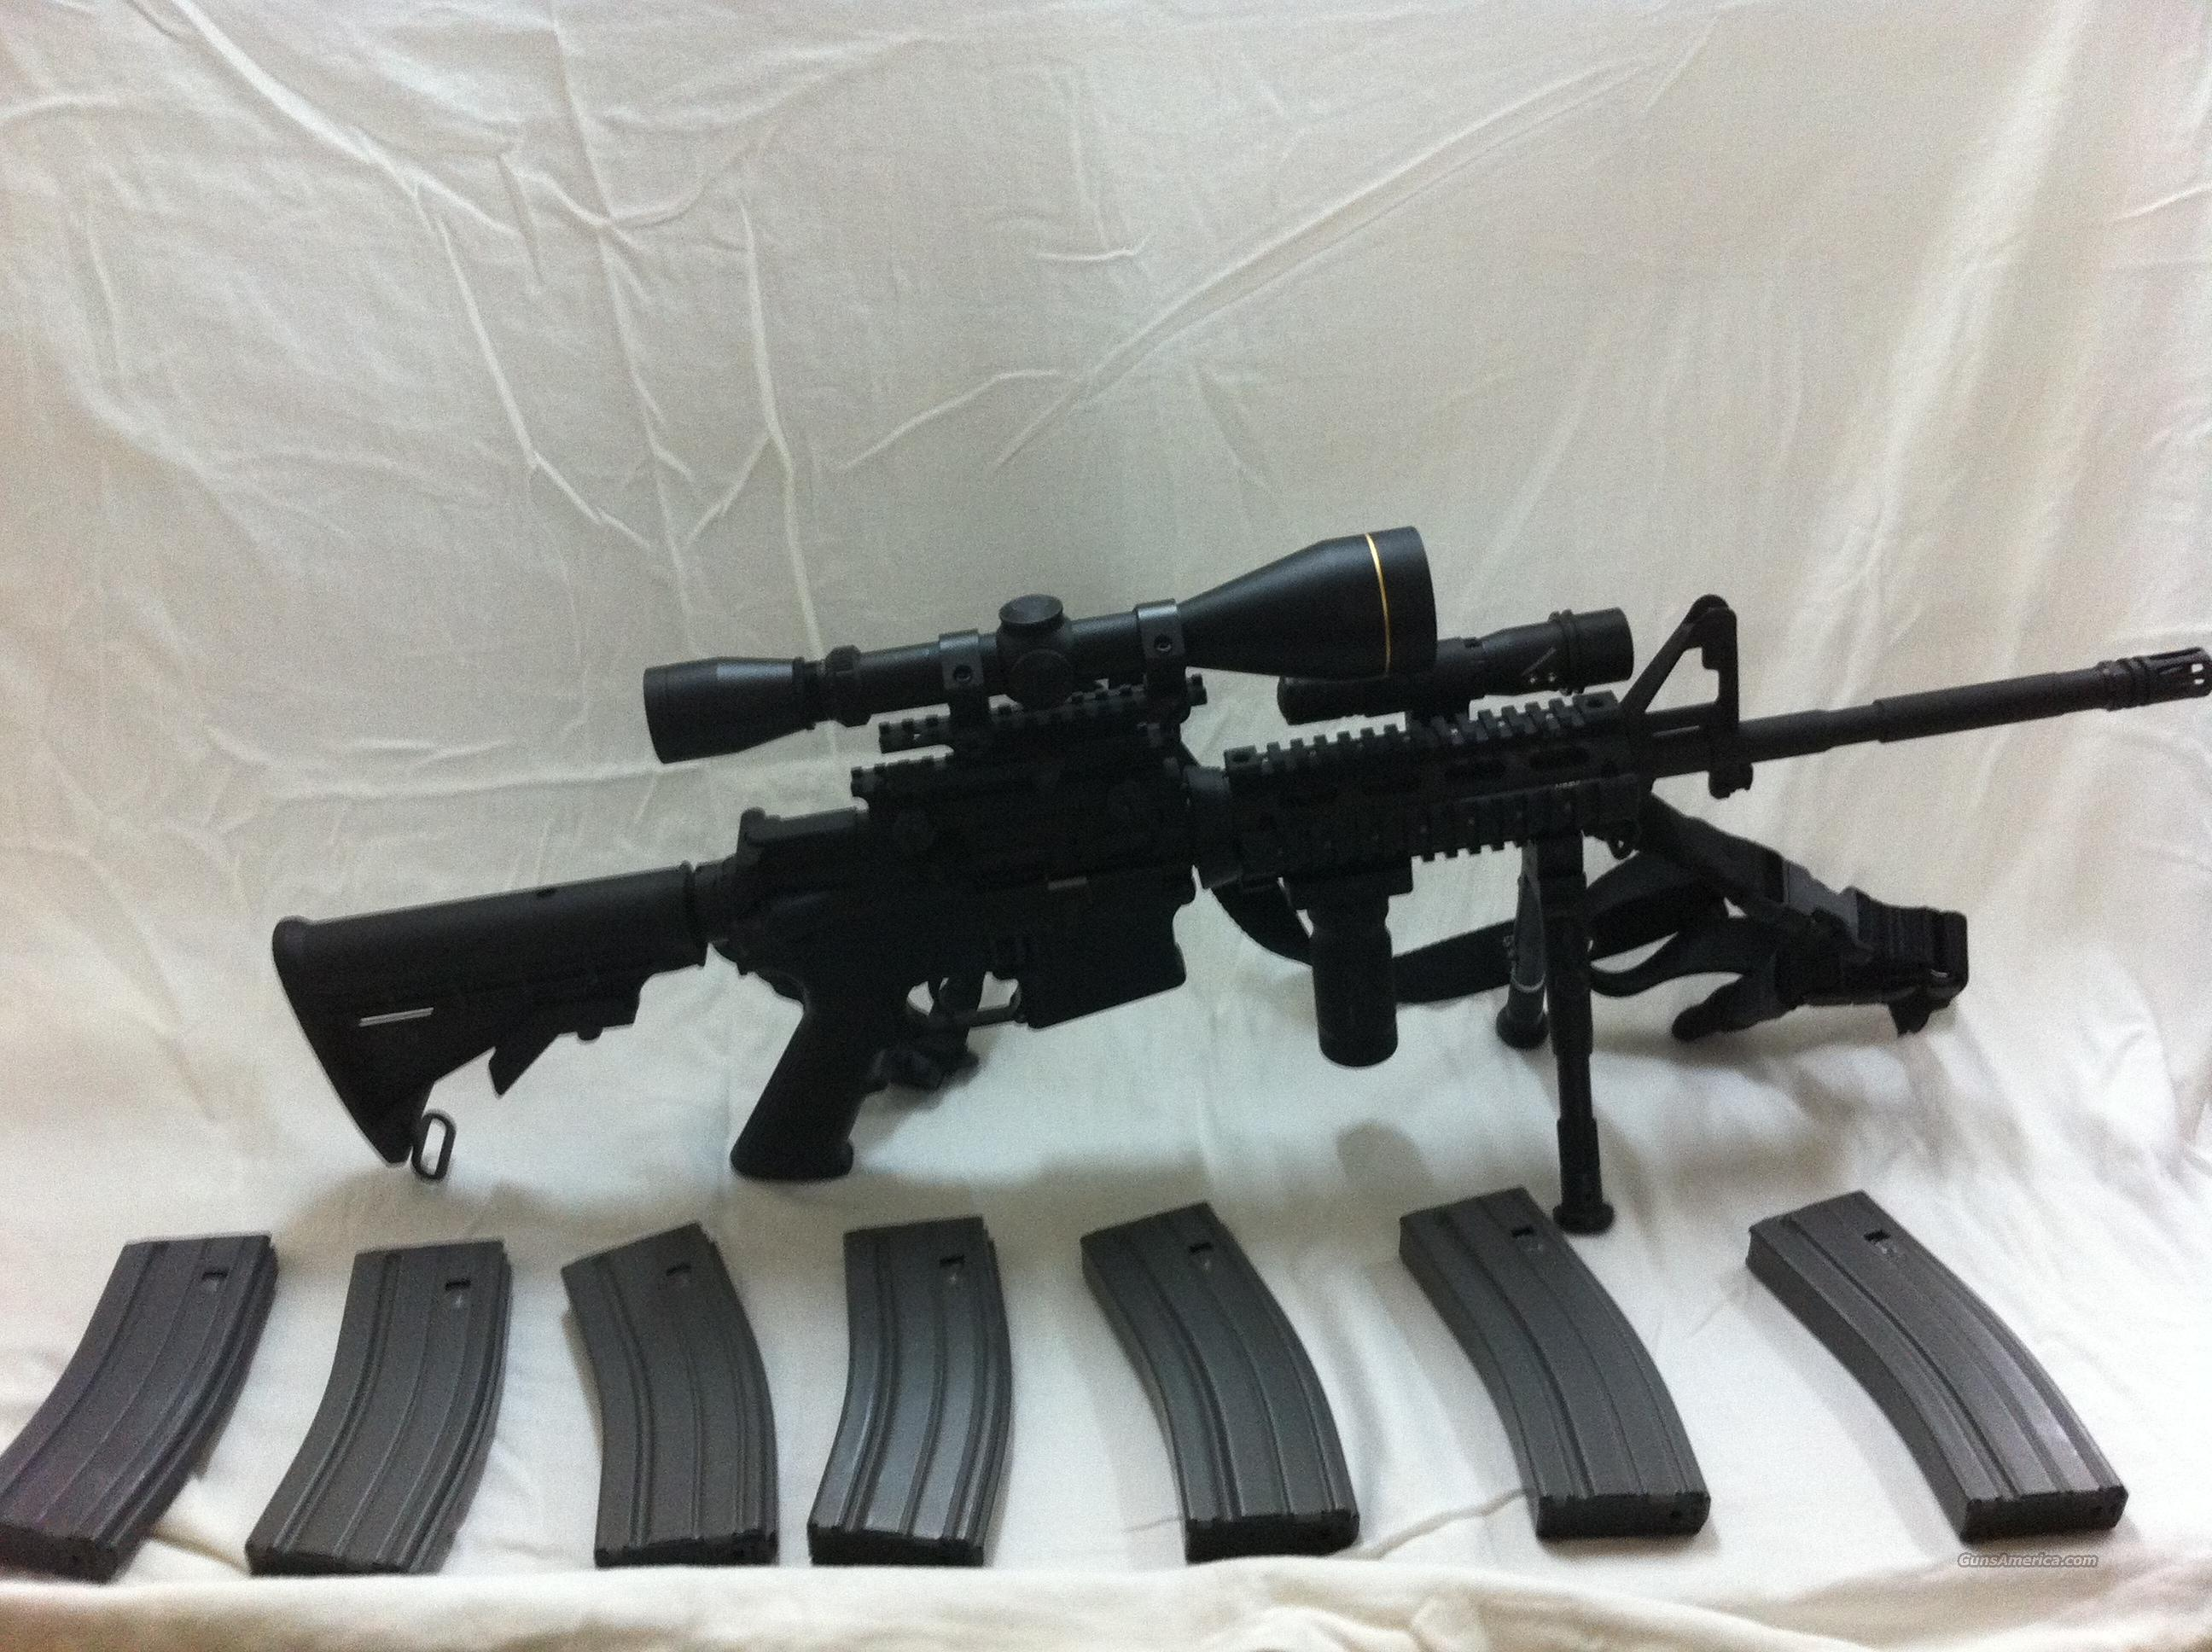 Bushmaster AR-15 XM15-E2S 223 556 5.56 Tactial ... For Sale